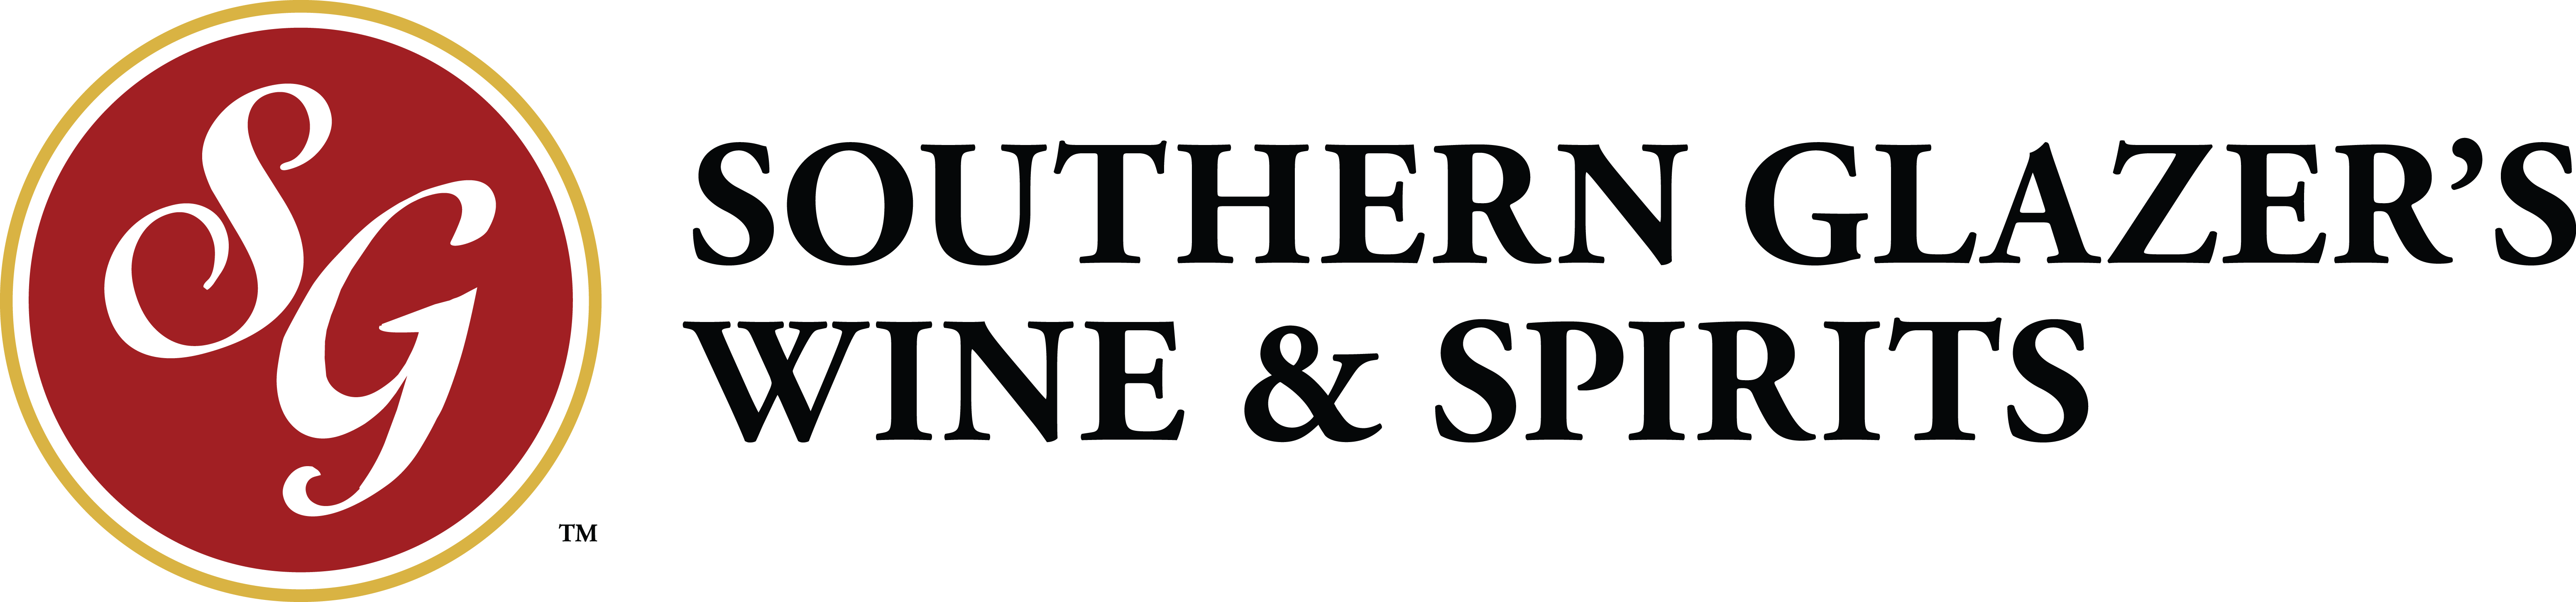 Team Page For Southern Glazer S Wine And Spirits